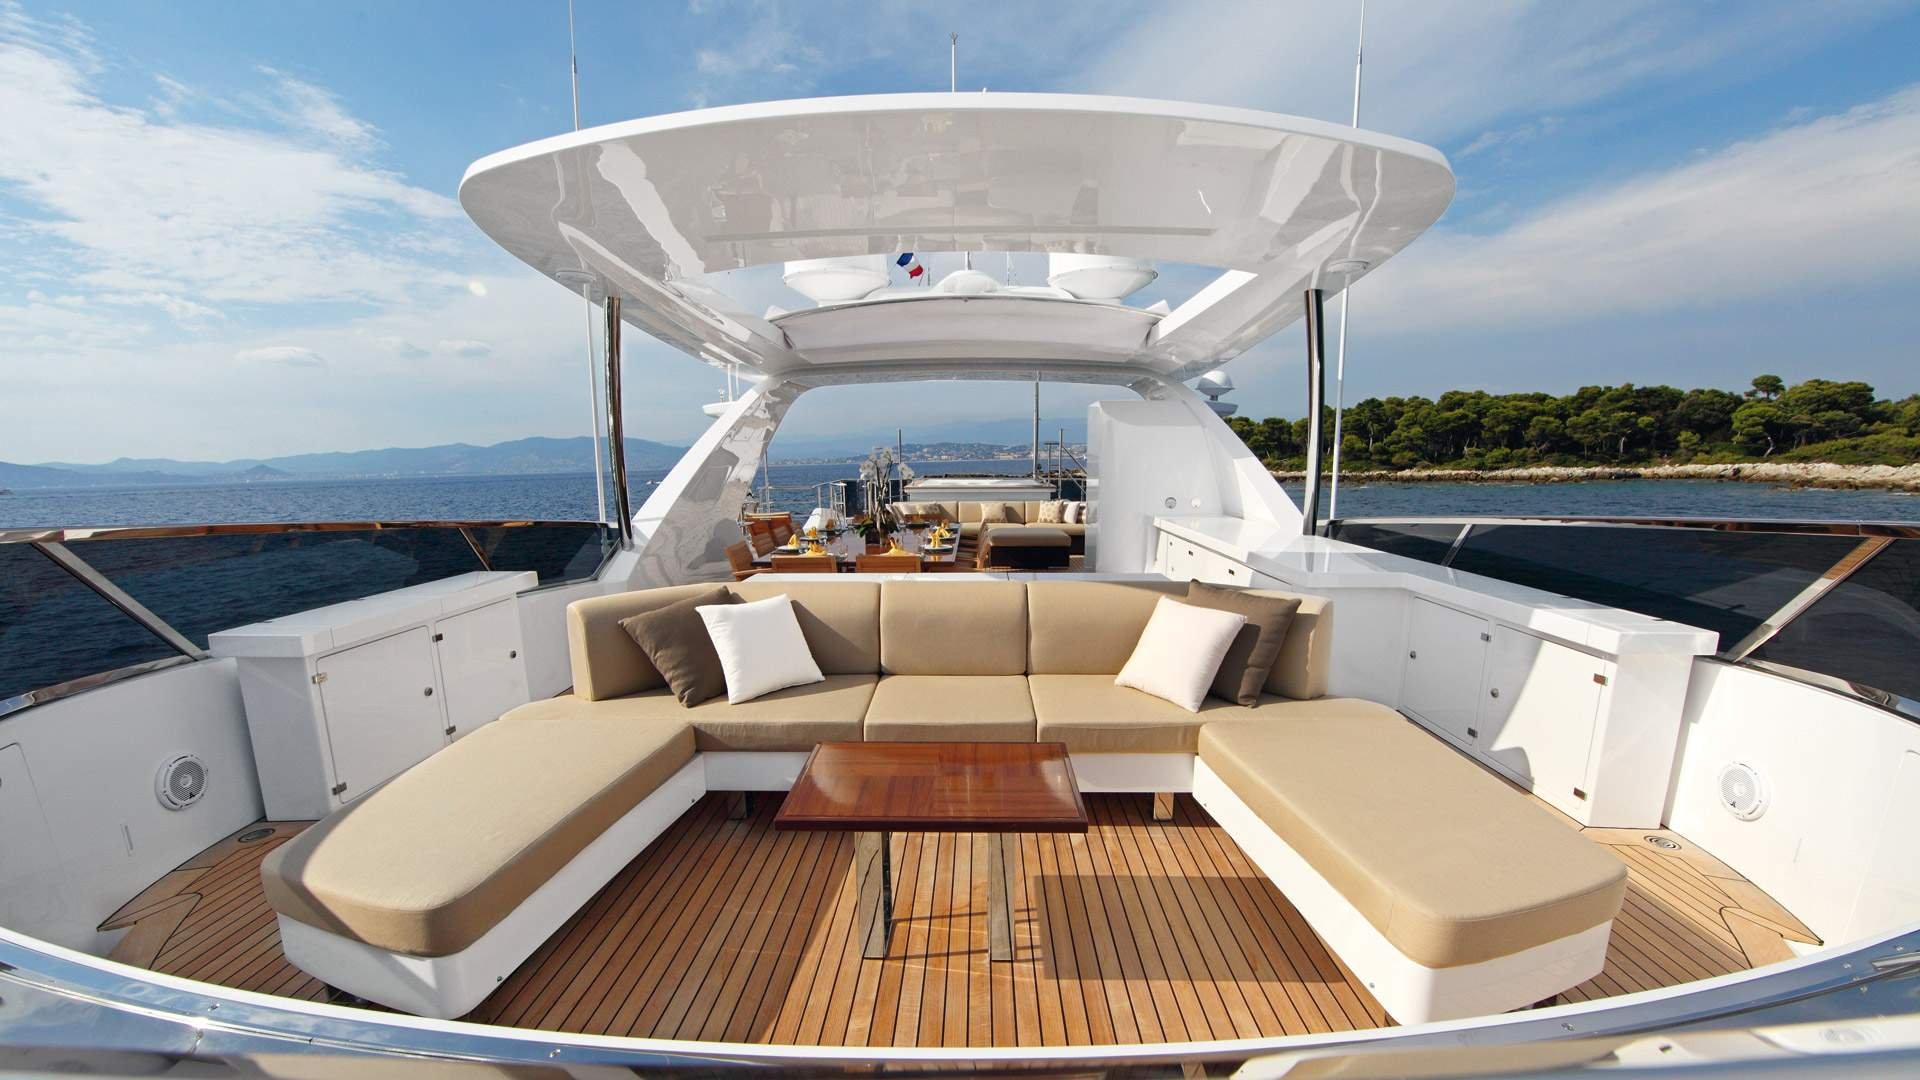 Sun Deck on Benetti Yacht used for sunbathing when at sea or on anchor